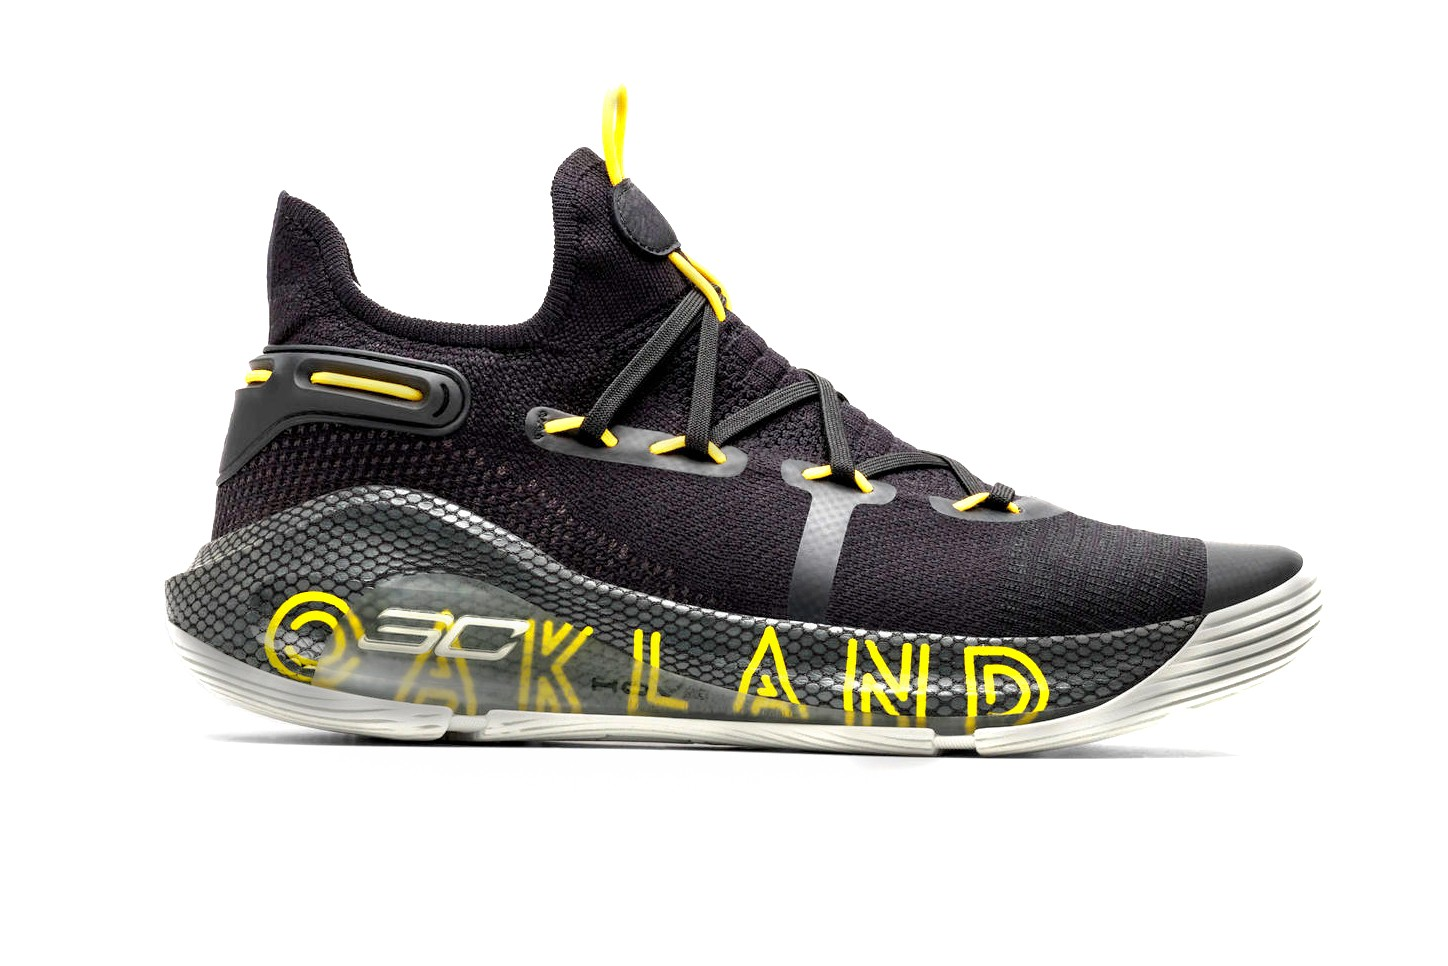 Stephen Curry 6 Under Armour Thank You